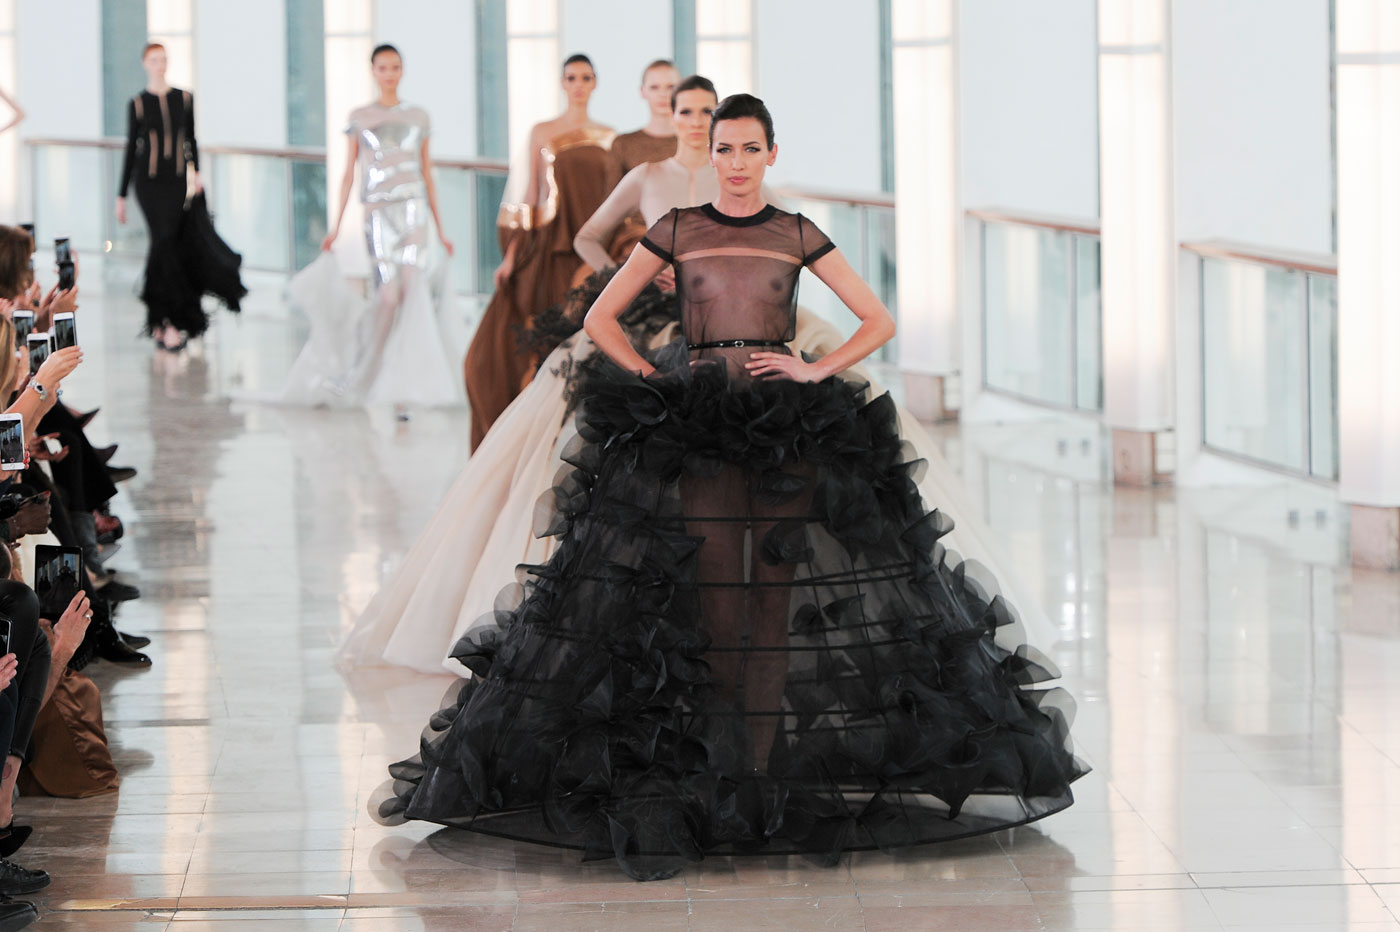 stephane-rolland-fashion-runway-show-haute-couture-paris-spring-2015-the-impression-70